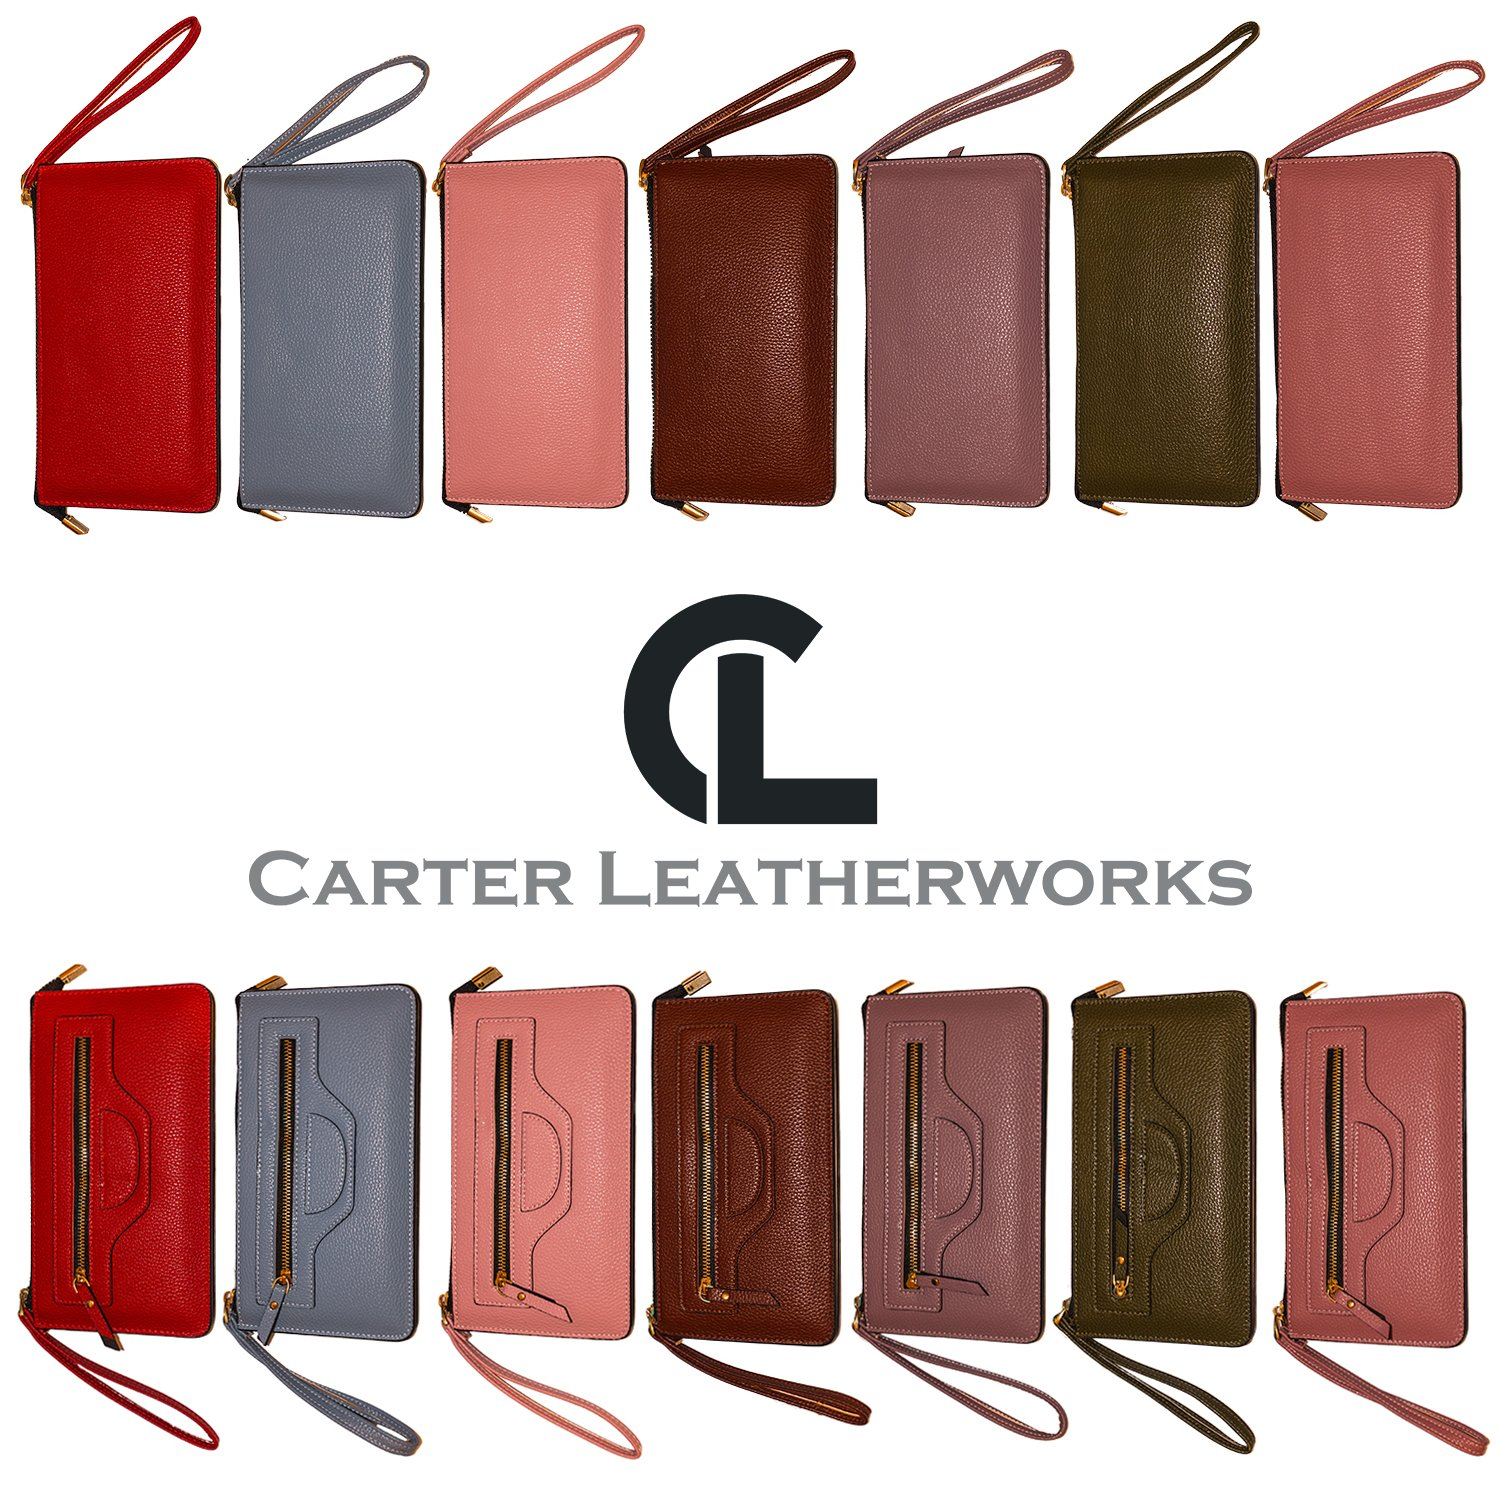 Carter Leatherworks Rodeo Womens PU Vegan Leather Wristlet Wallet Clutch Purse Fits Any Smartphone (Coffee) by Carter Leatherworks (Image #5)